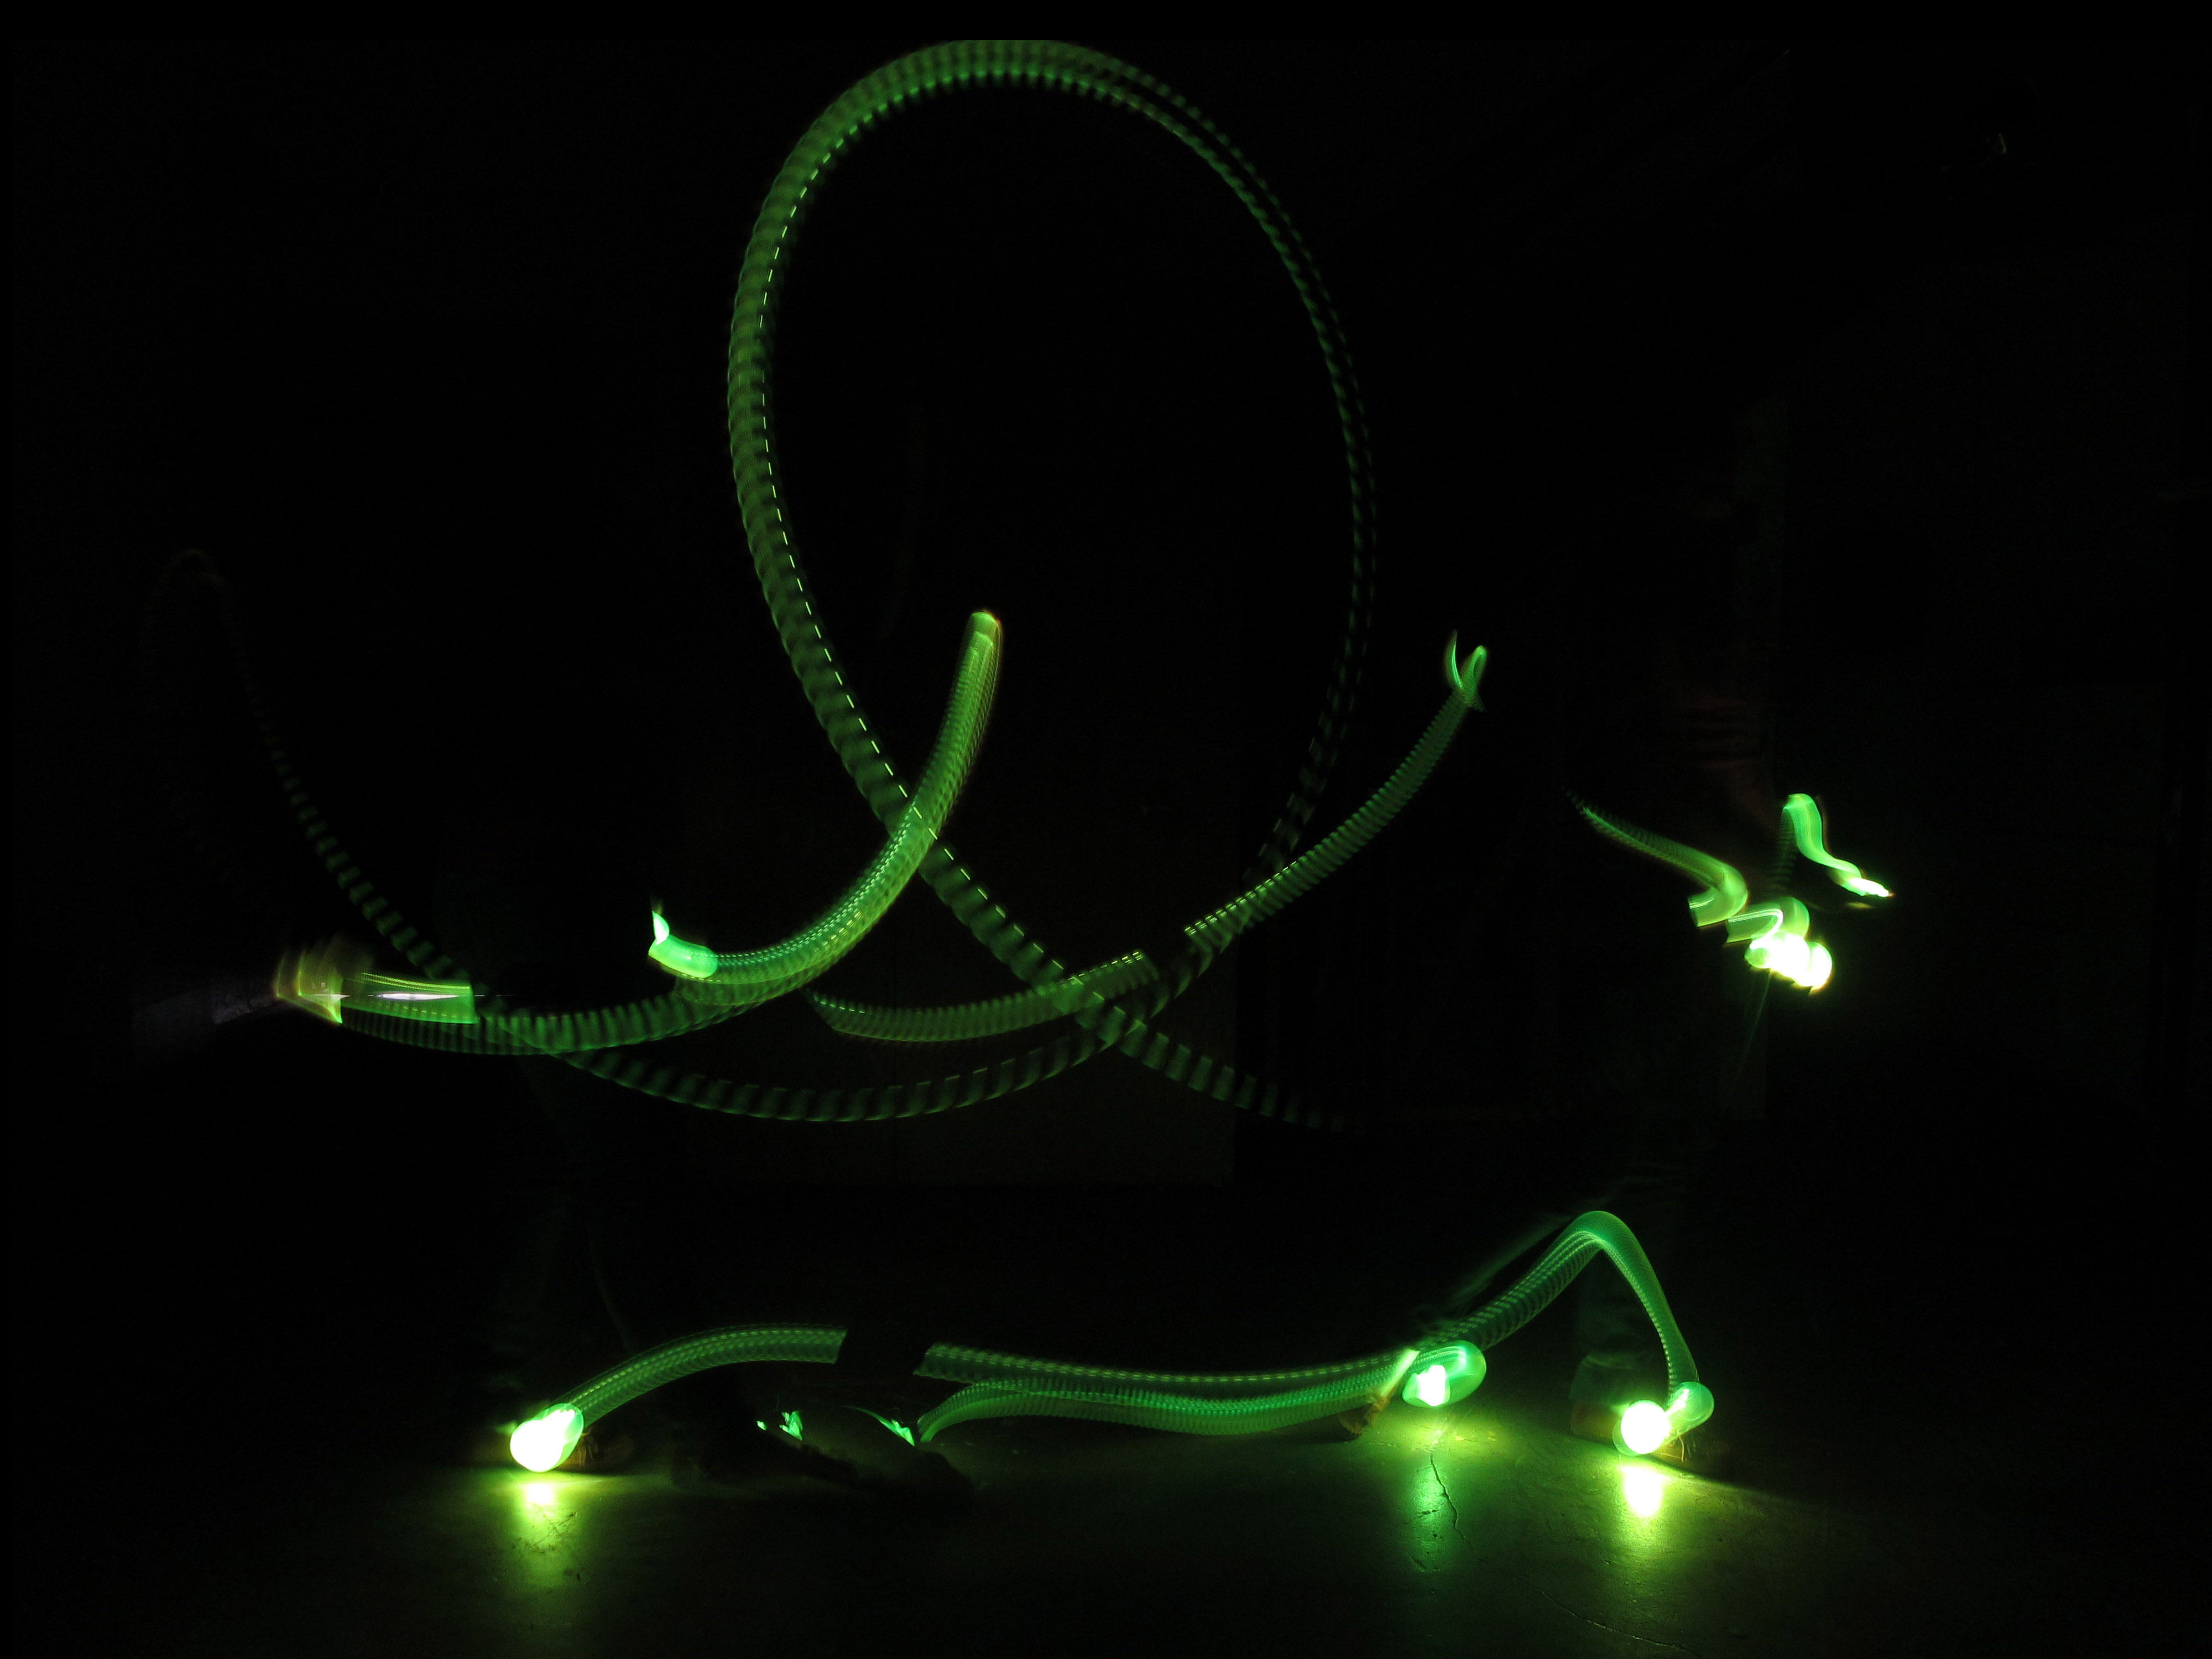 Light Painting Performing Everyday Movements 9 12